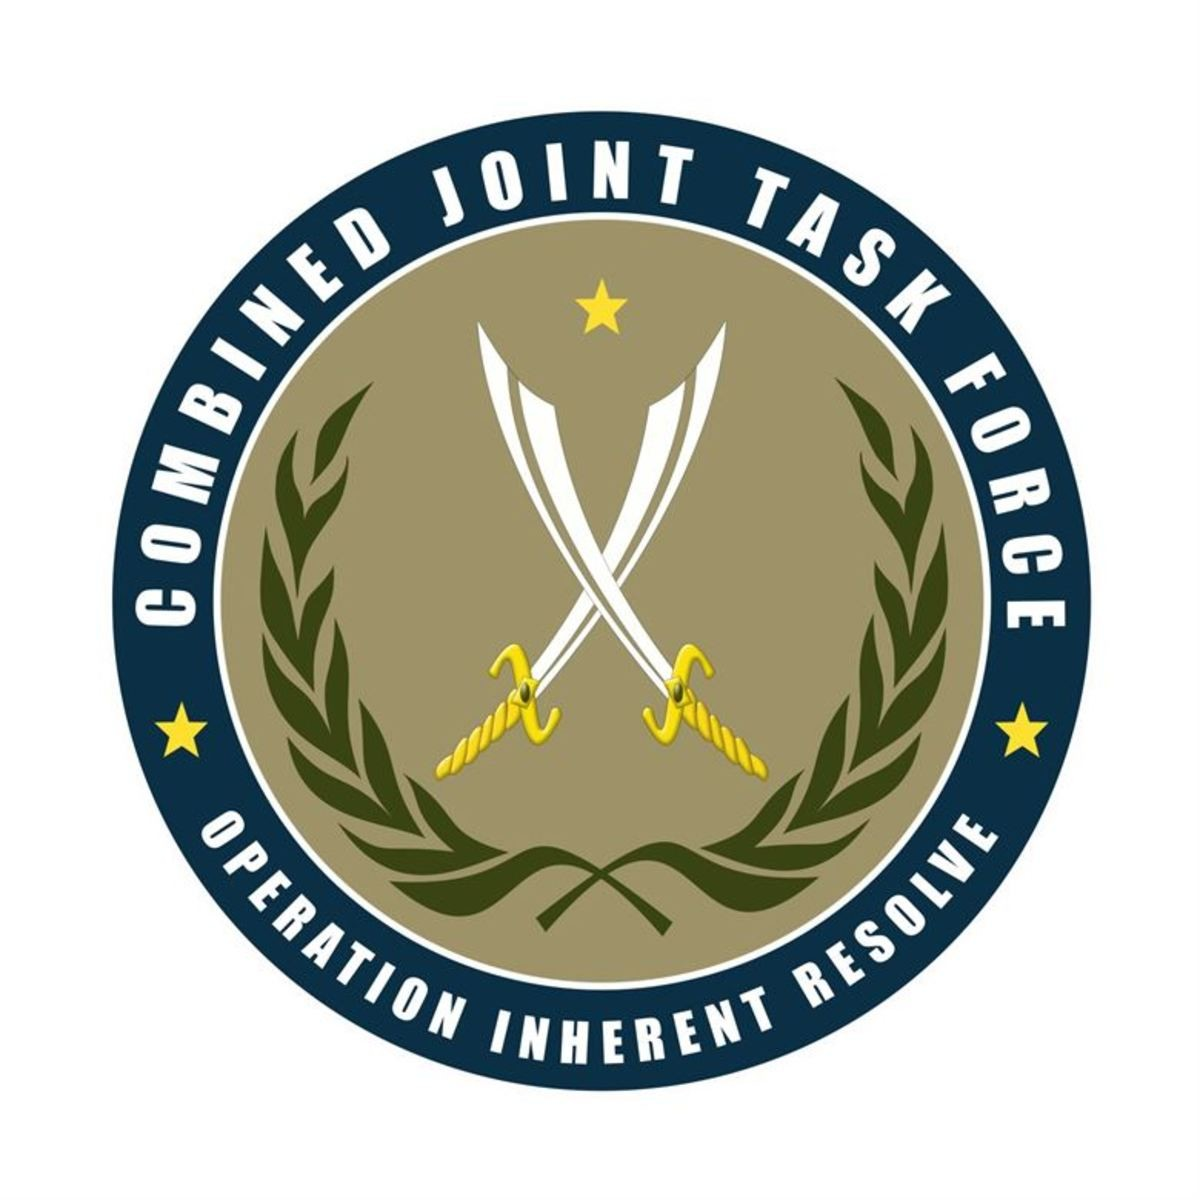 CJTF: OIR 8-25-17. Please standby for a Combined Joint Task Force: Operation Inherent Resolve update https://www.defense.gov/News/Article/Article/1289632/offici